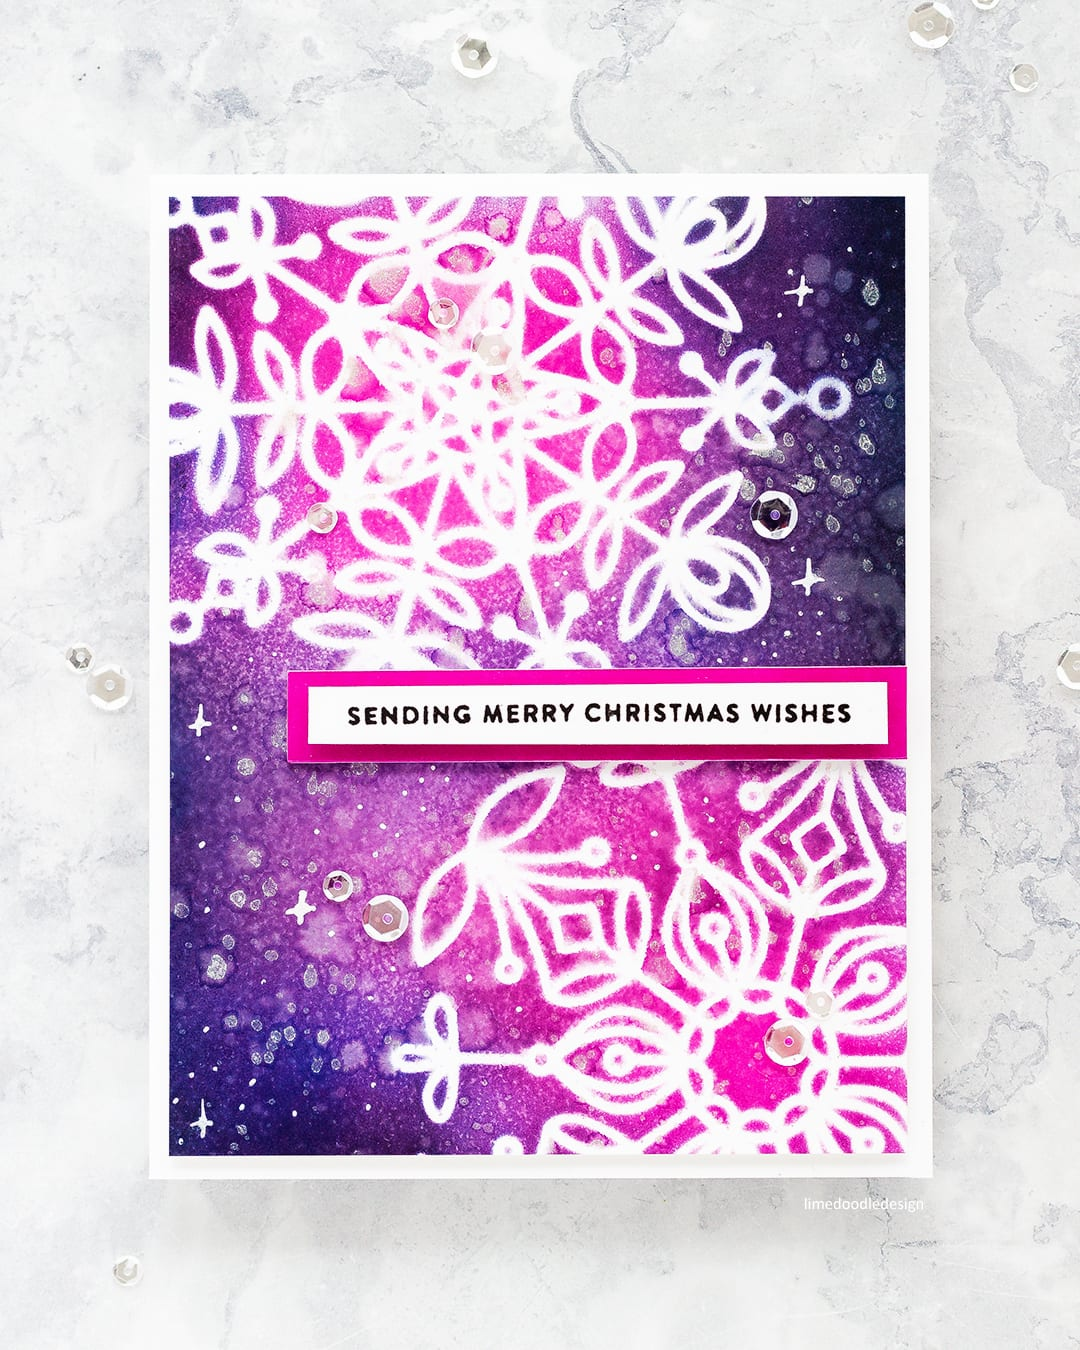 Frozen Fractals handmade Christmas card by Debby Hughes using the new Holiday release from Simon Says Stamp. Find out more here: https://limedoodledesign.com/2017/10/simon-says-stamp-holiday-release-blog-hop/